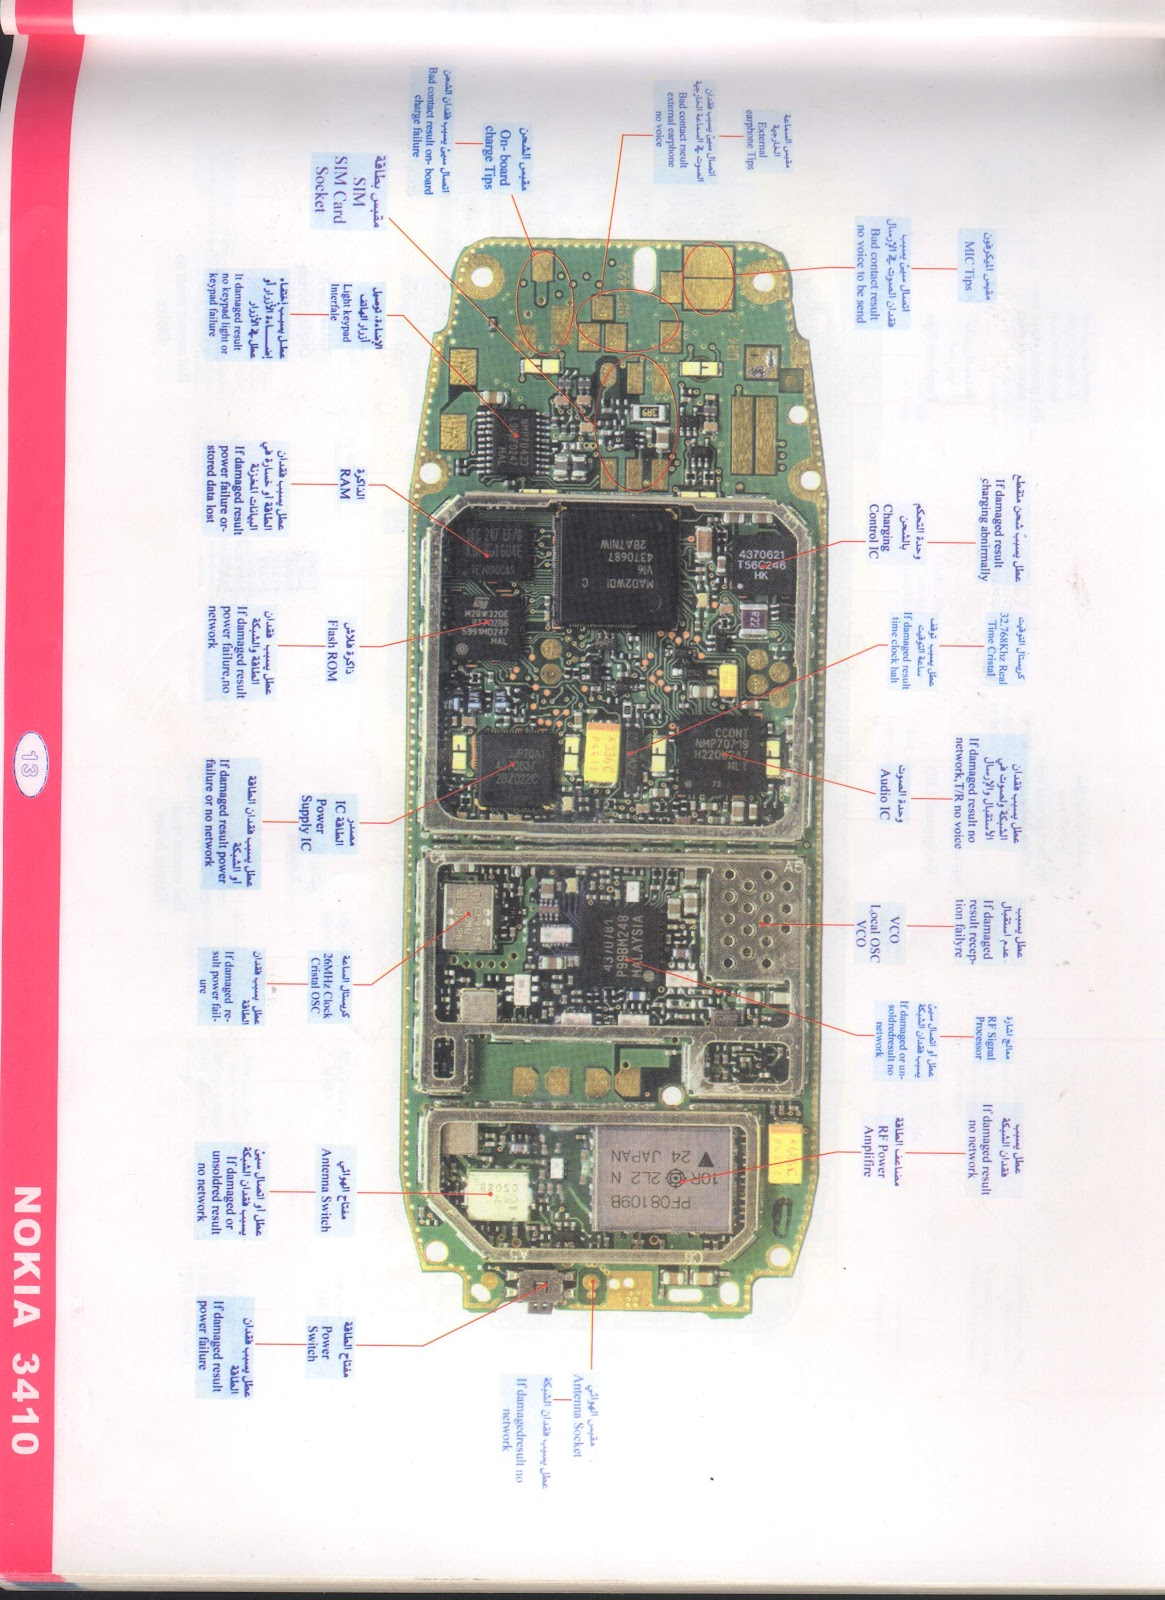 Circuit Diagram Of Nokia C2 01 Wiring Library 114 Pcb Posted By Ali Abass At 0157 3410 Board